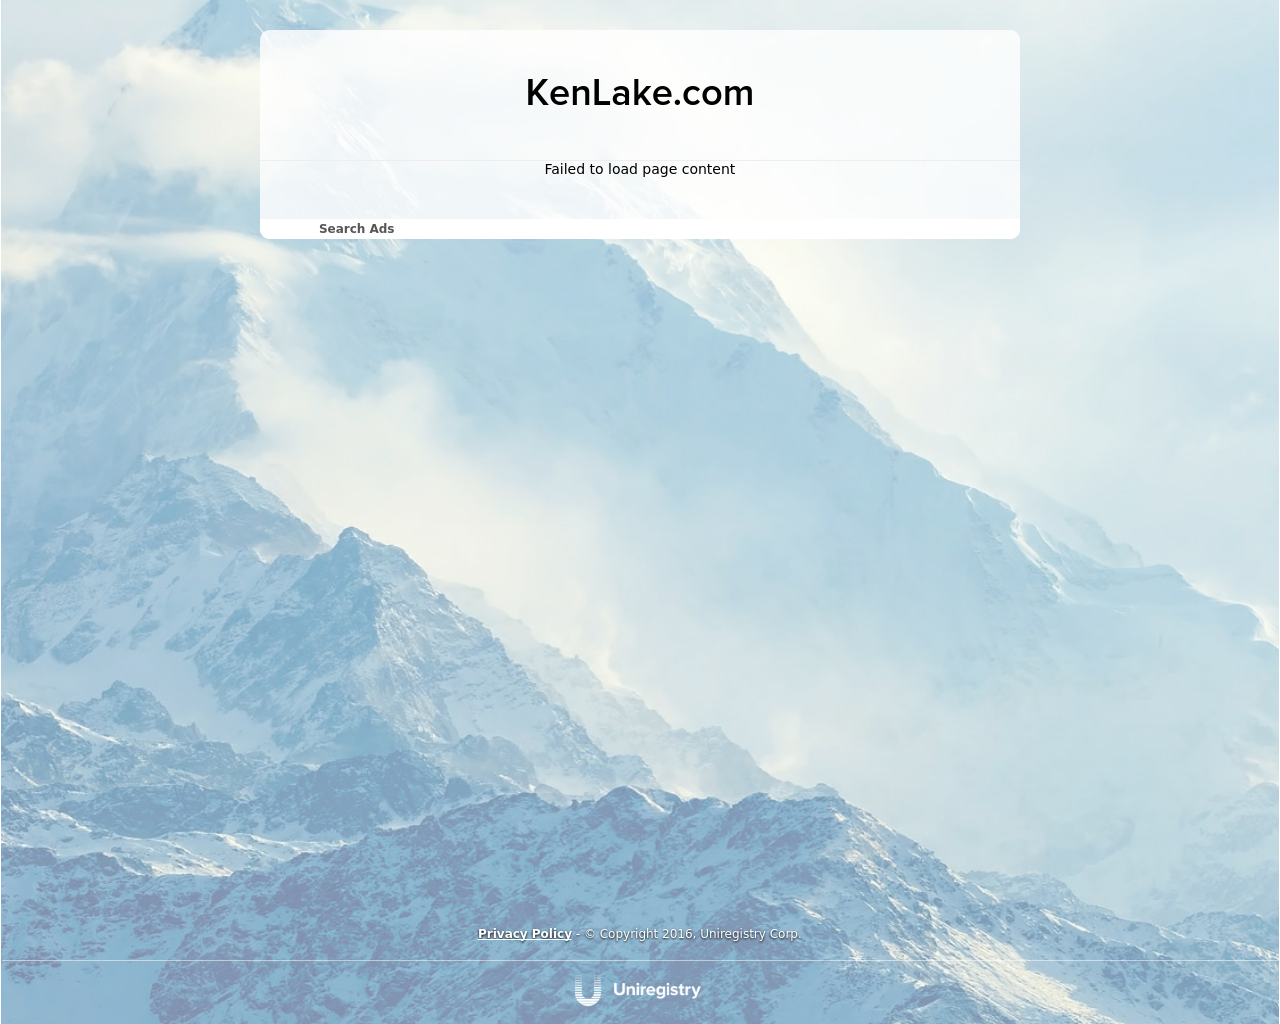 Kenlake.com-Advertising-Reviews-Pricing